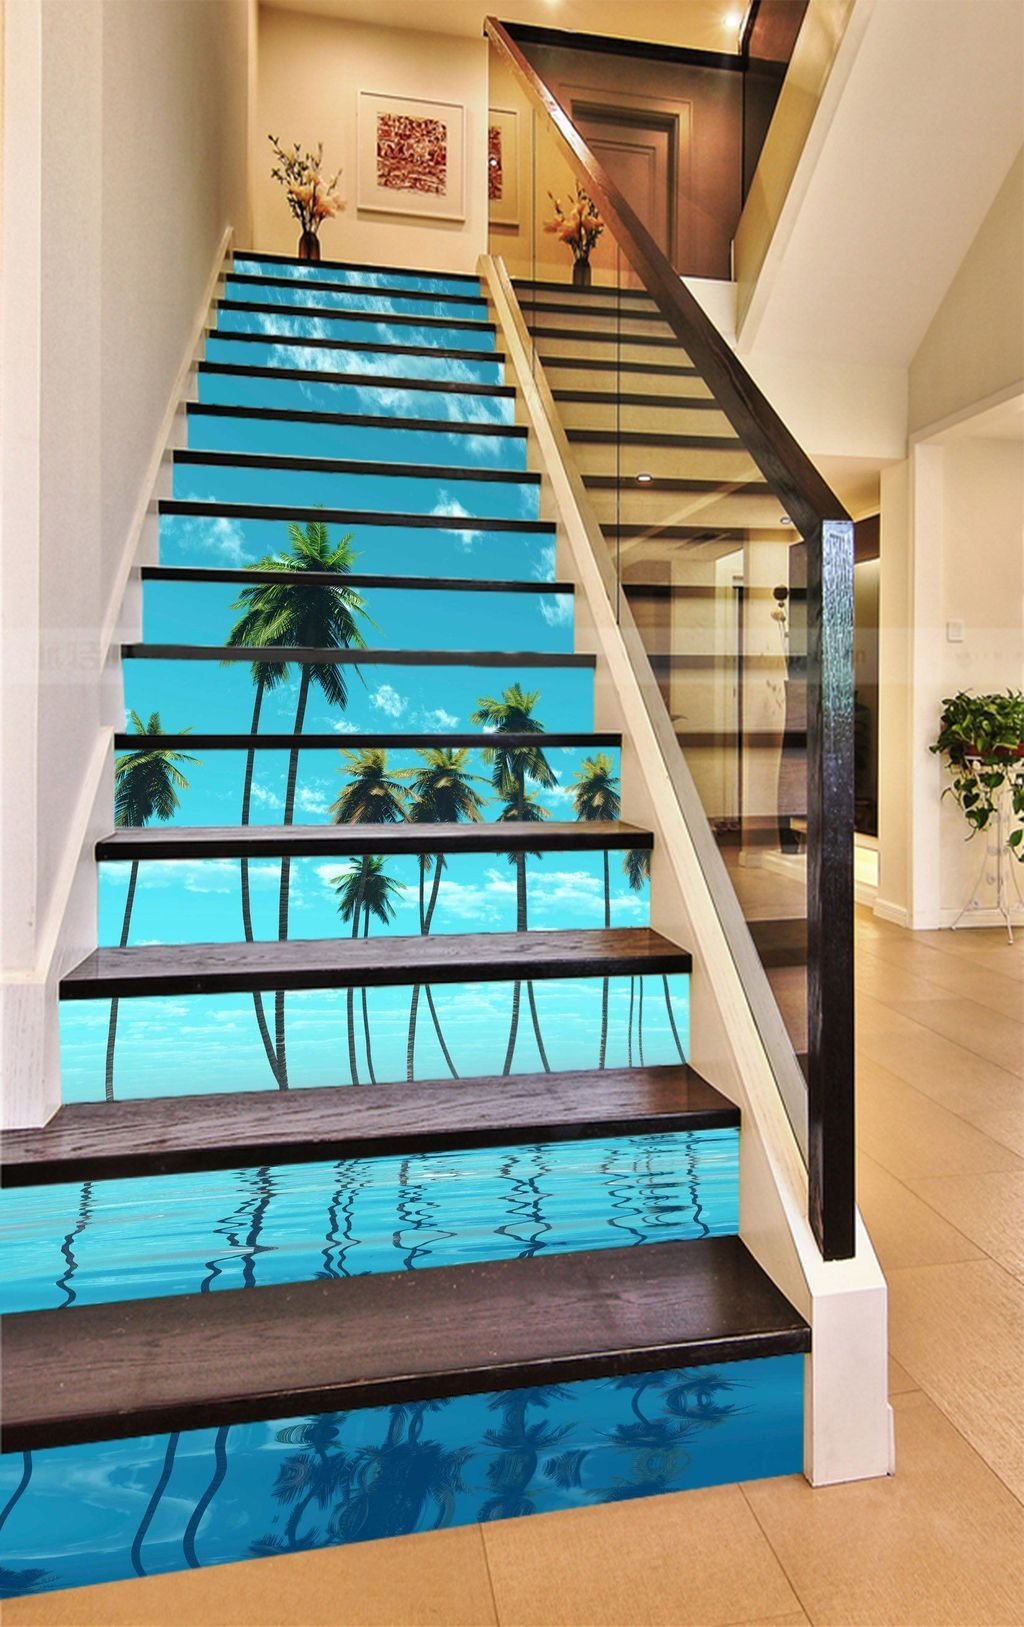 30+ Best Ideas For Home Stairs Design With Aquarium